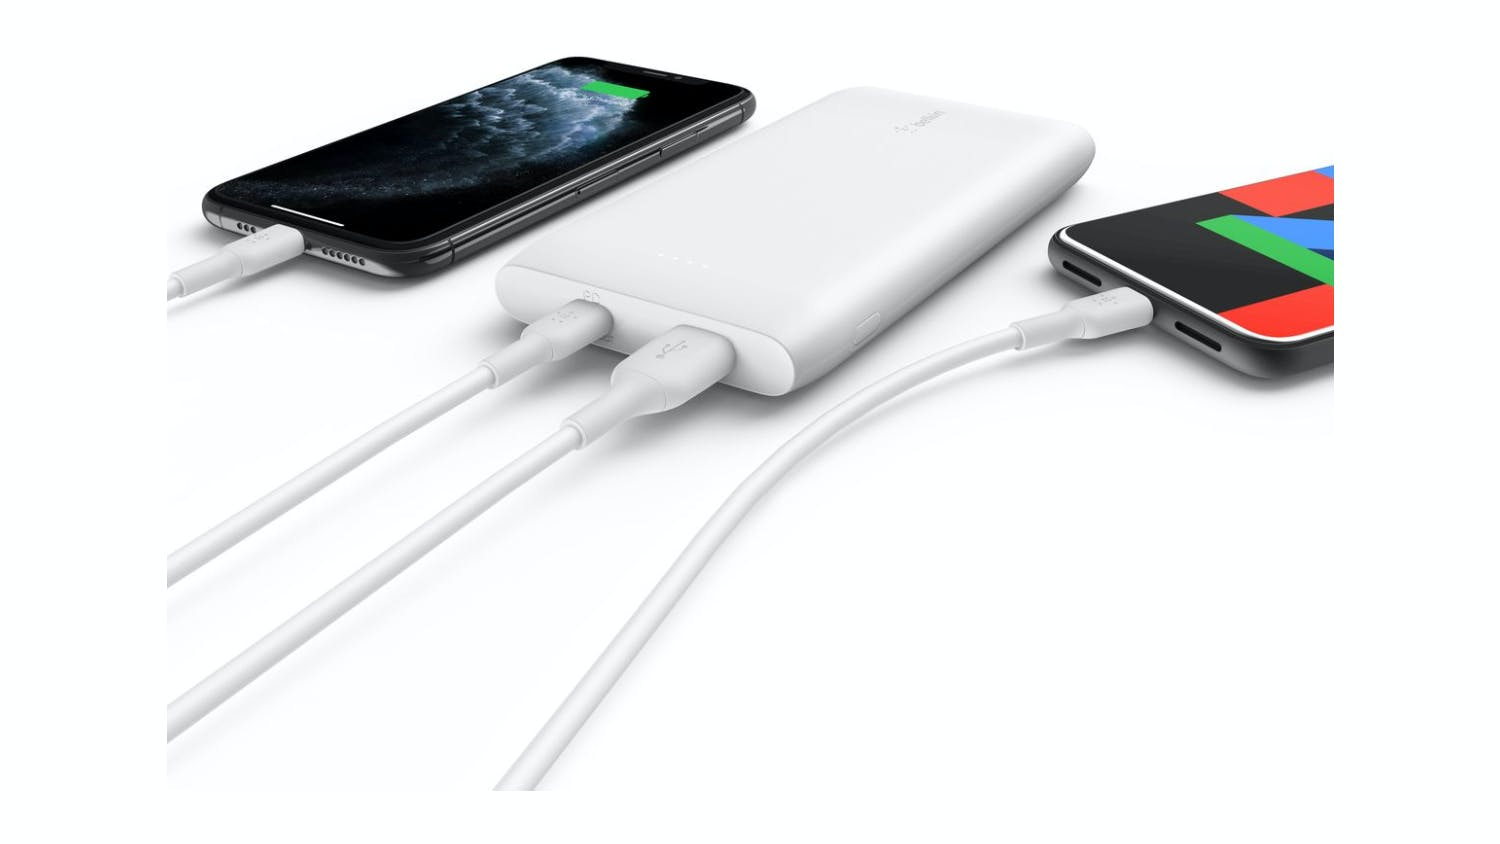 Belkin Boost Up Charge USB-C PD 10,000mAh Power Bank + USB-C Cable - White